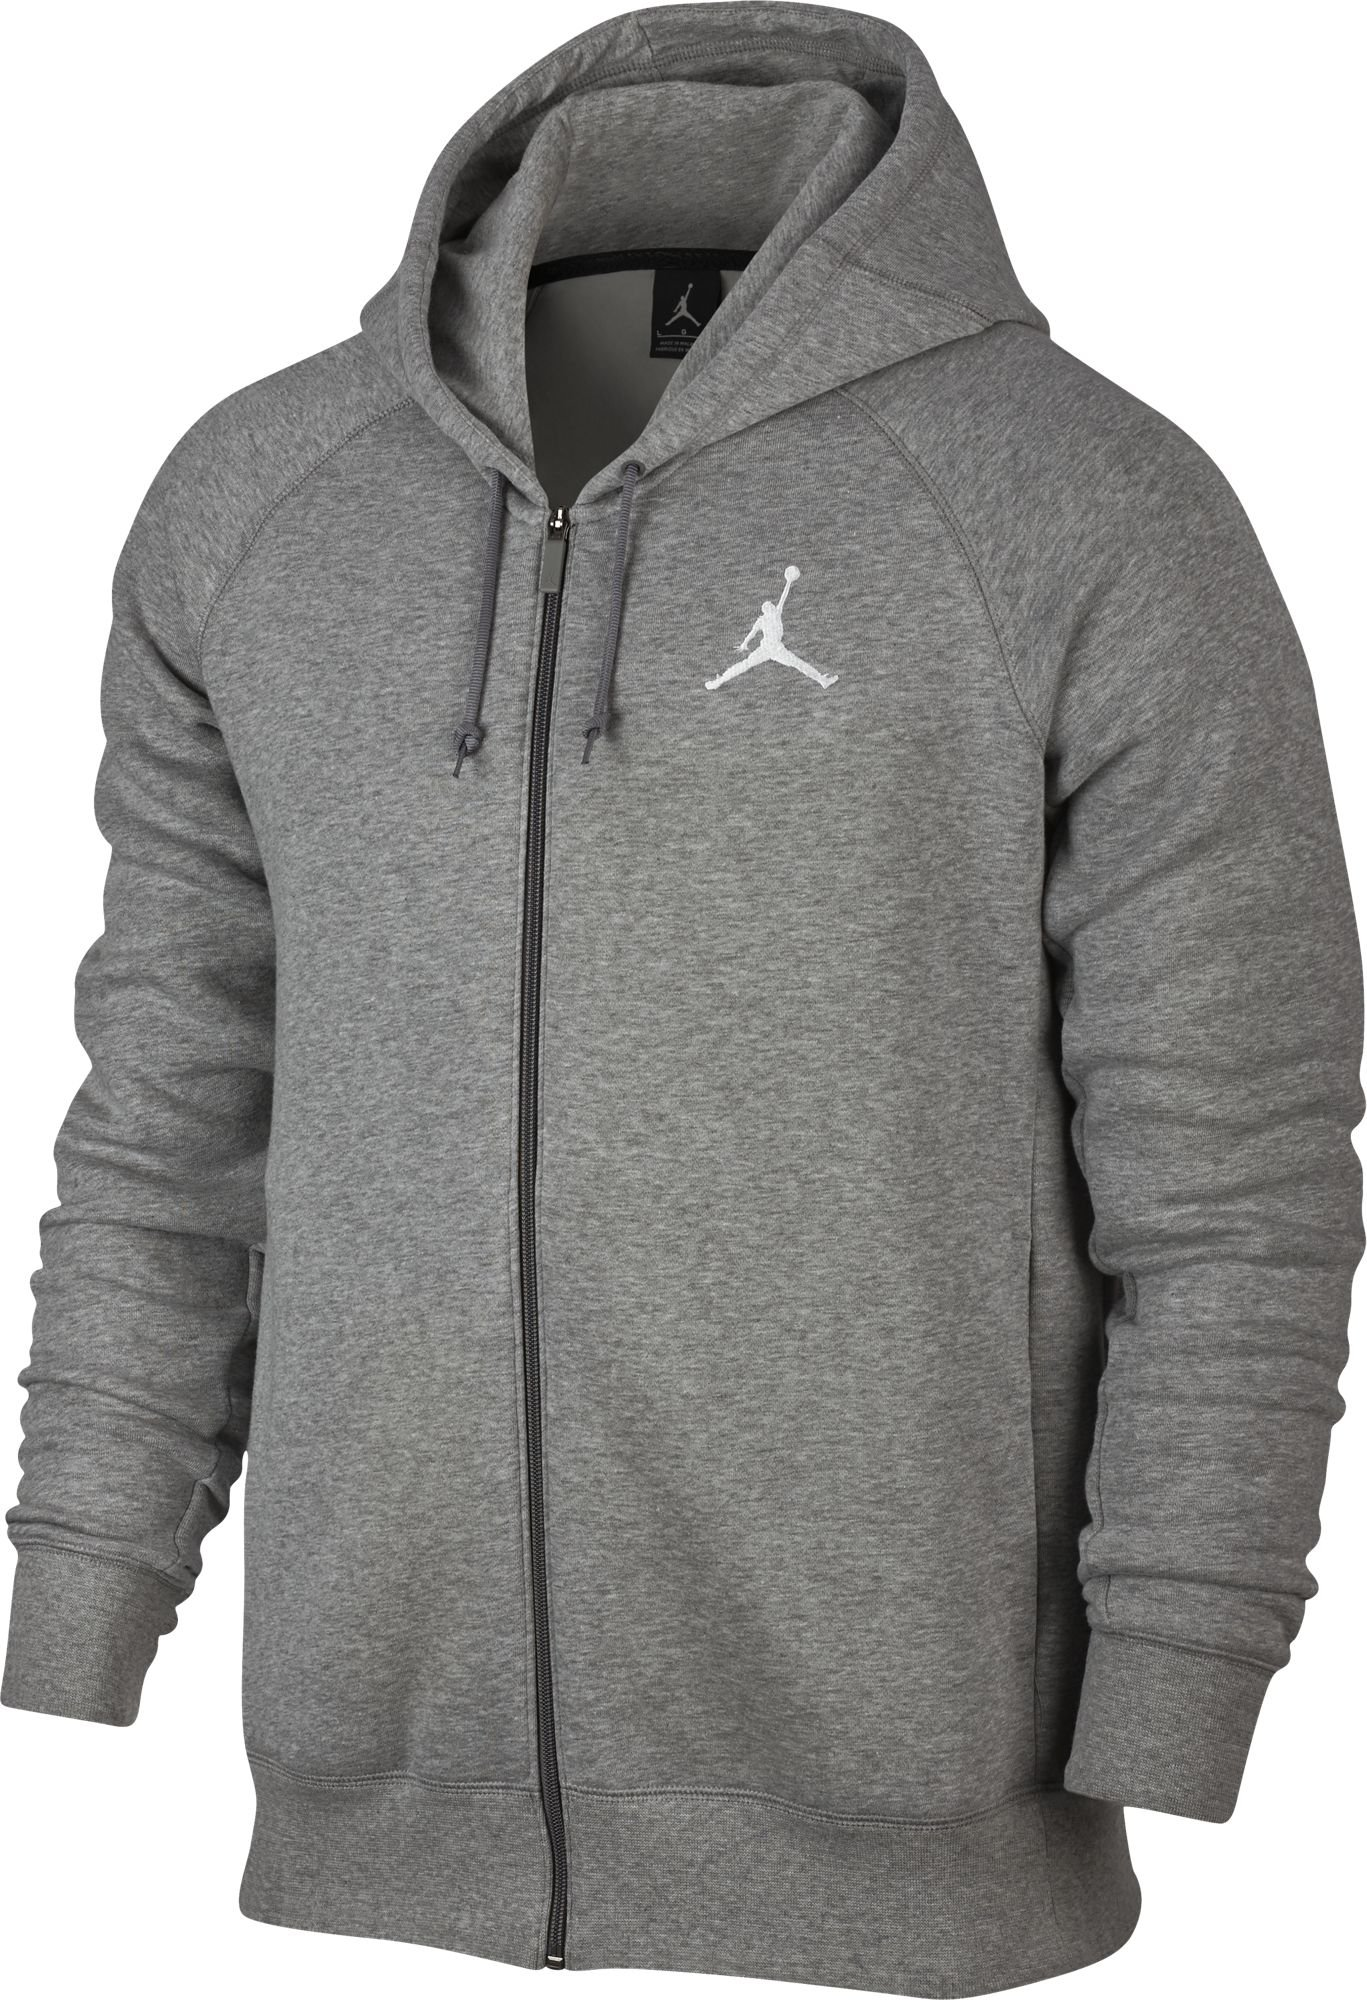 Nike Mens Jordan Flight Full Zip Hooded Sweatshirt Light Grey/White 823064-063 Size 2X-Large